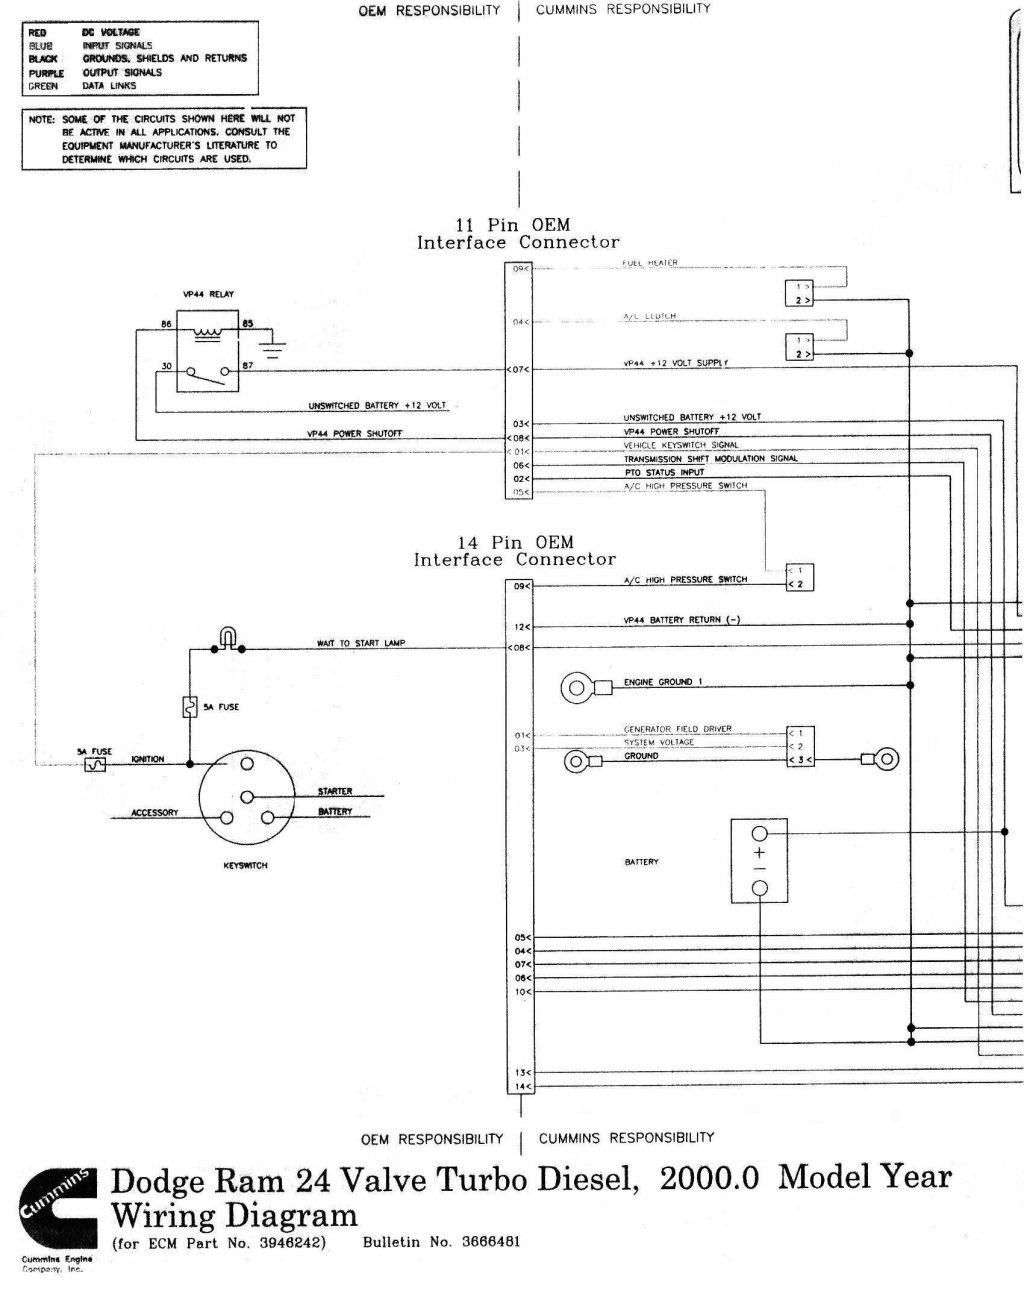 Wiring Diagram Cat Pin Ecm Dodge Ram Infinity Fresh At